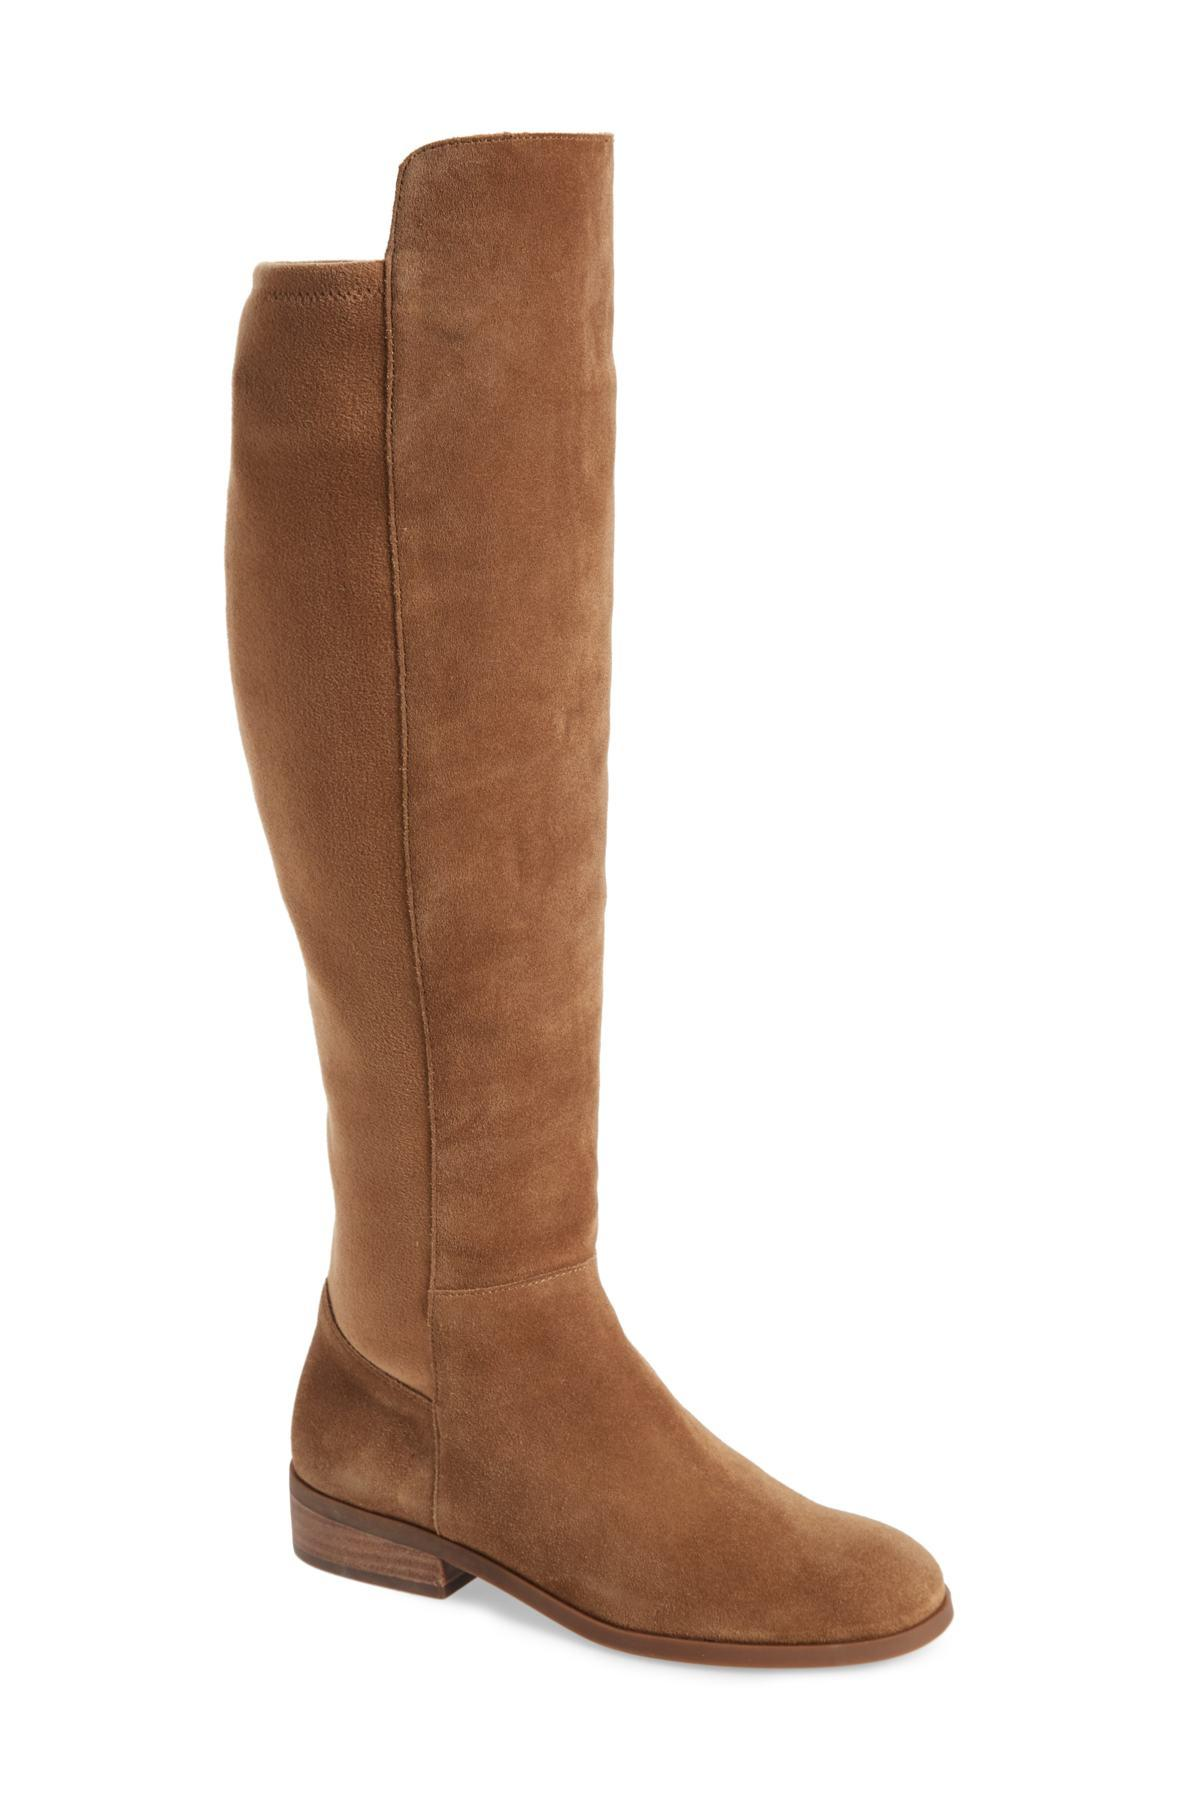 06ef06adf26 Lyst - Sole Society Calypso Over The Knee Boot (women) in Brown